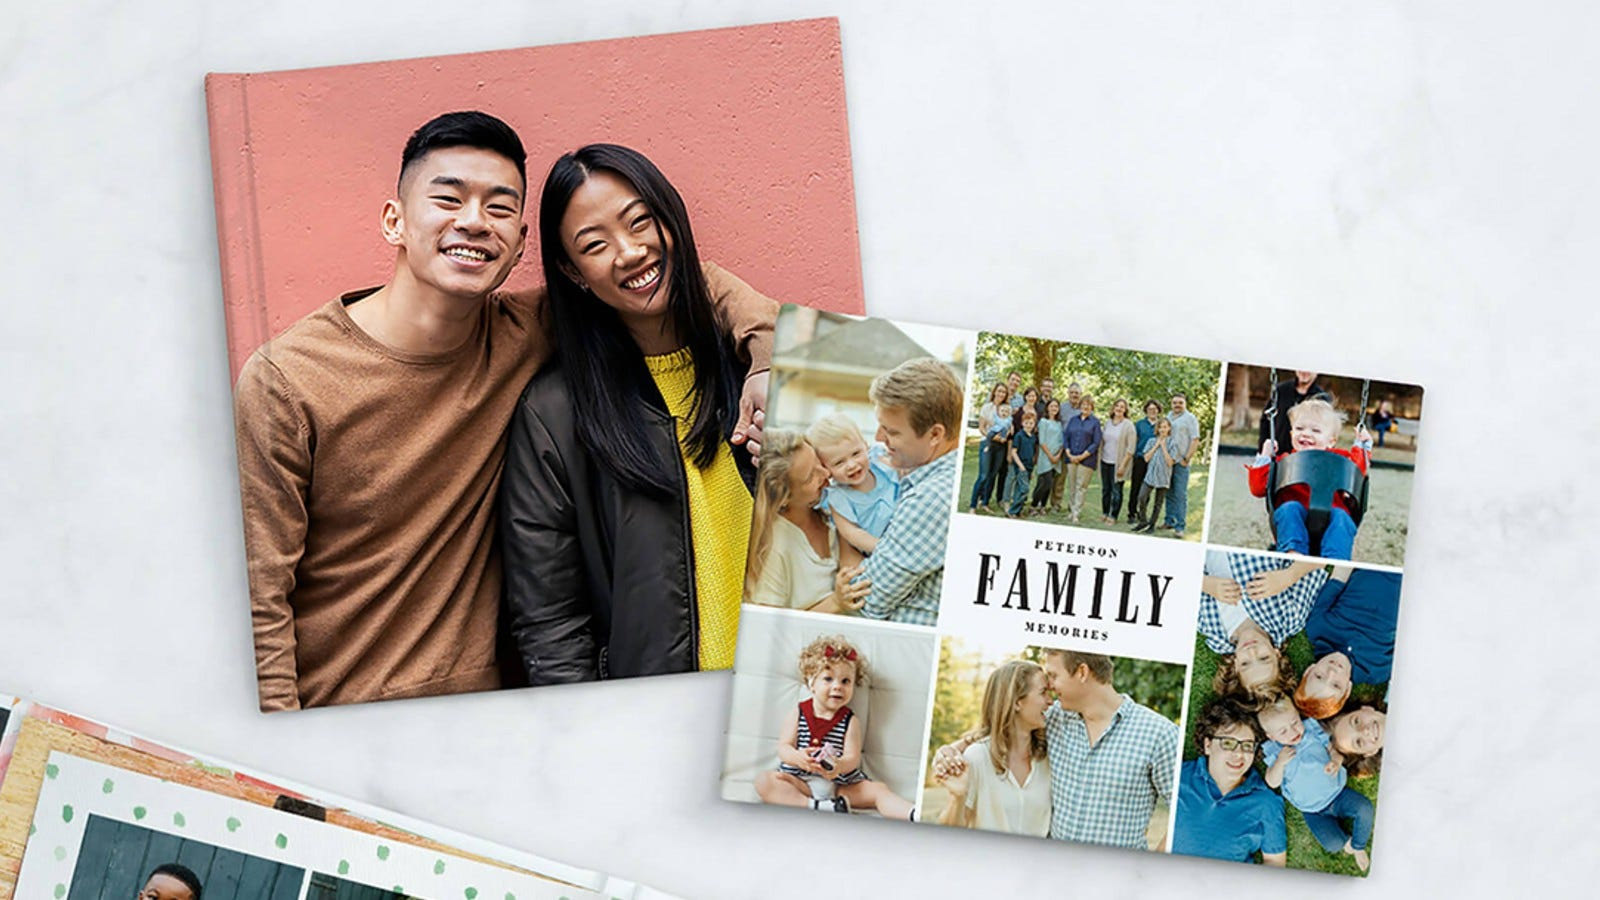 two photobooks featuring a photo of a smiling Asian couple and one of a variety of family photos